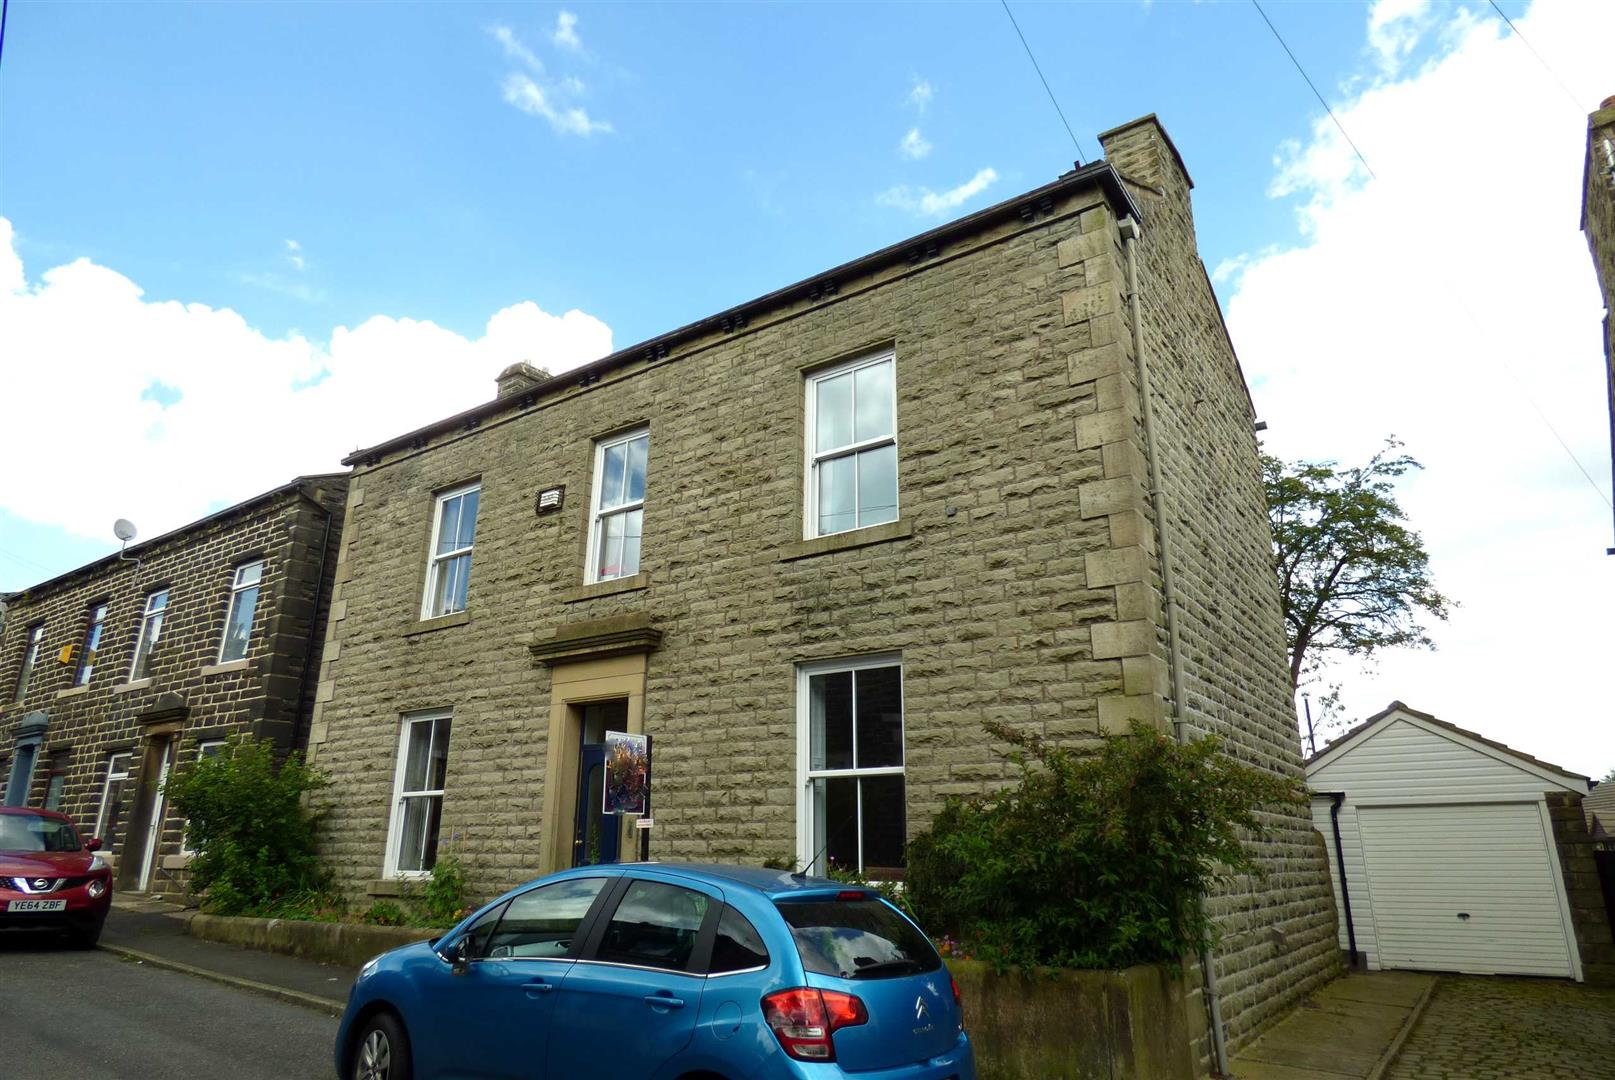 Church Street, Stacksteads, Bacup